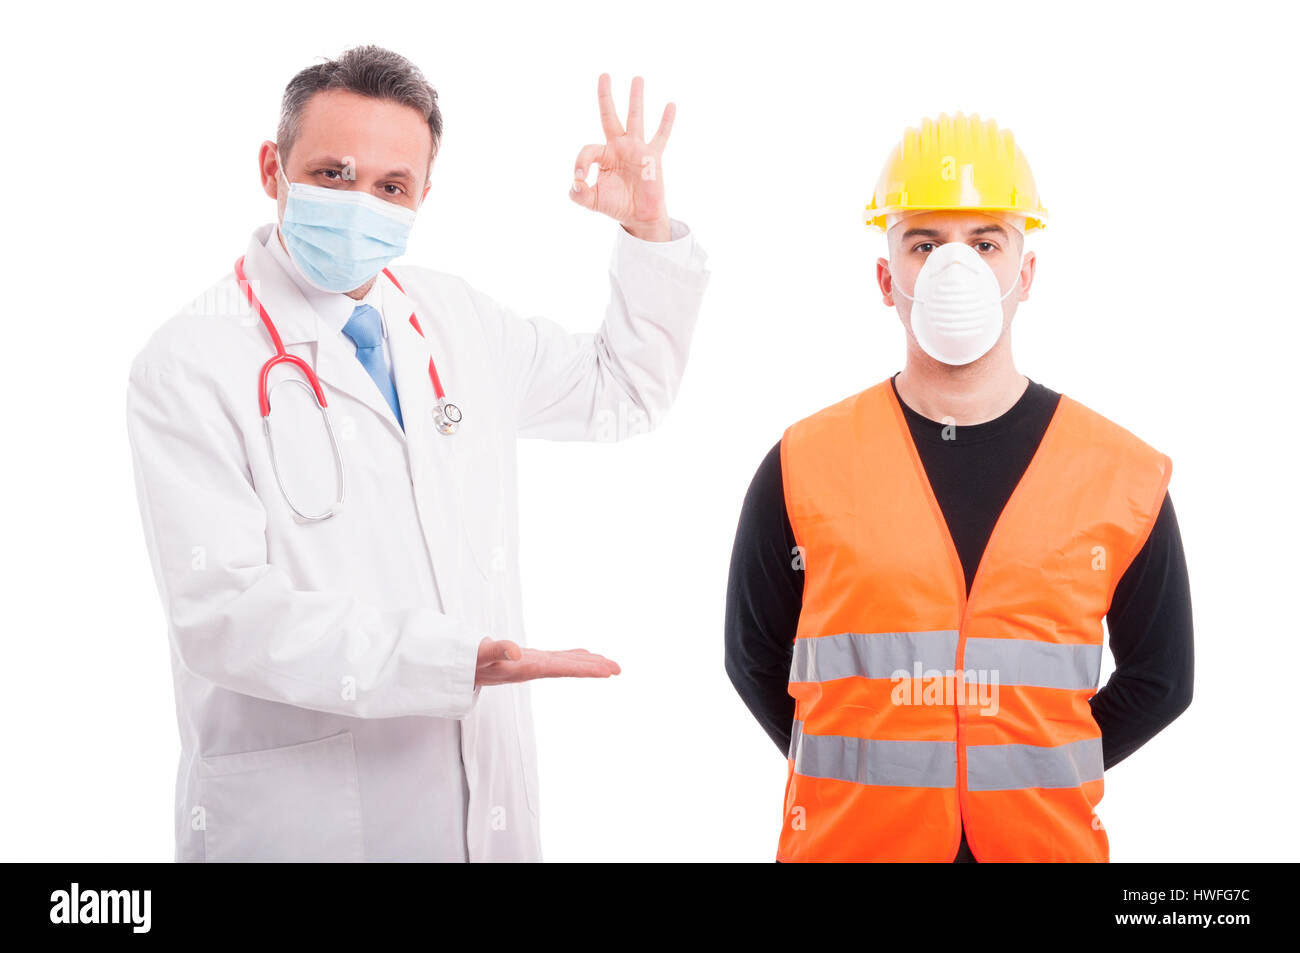 Doctor holding something and showing okay with constructor aside isolated on white background with copy text space - Stock Image